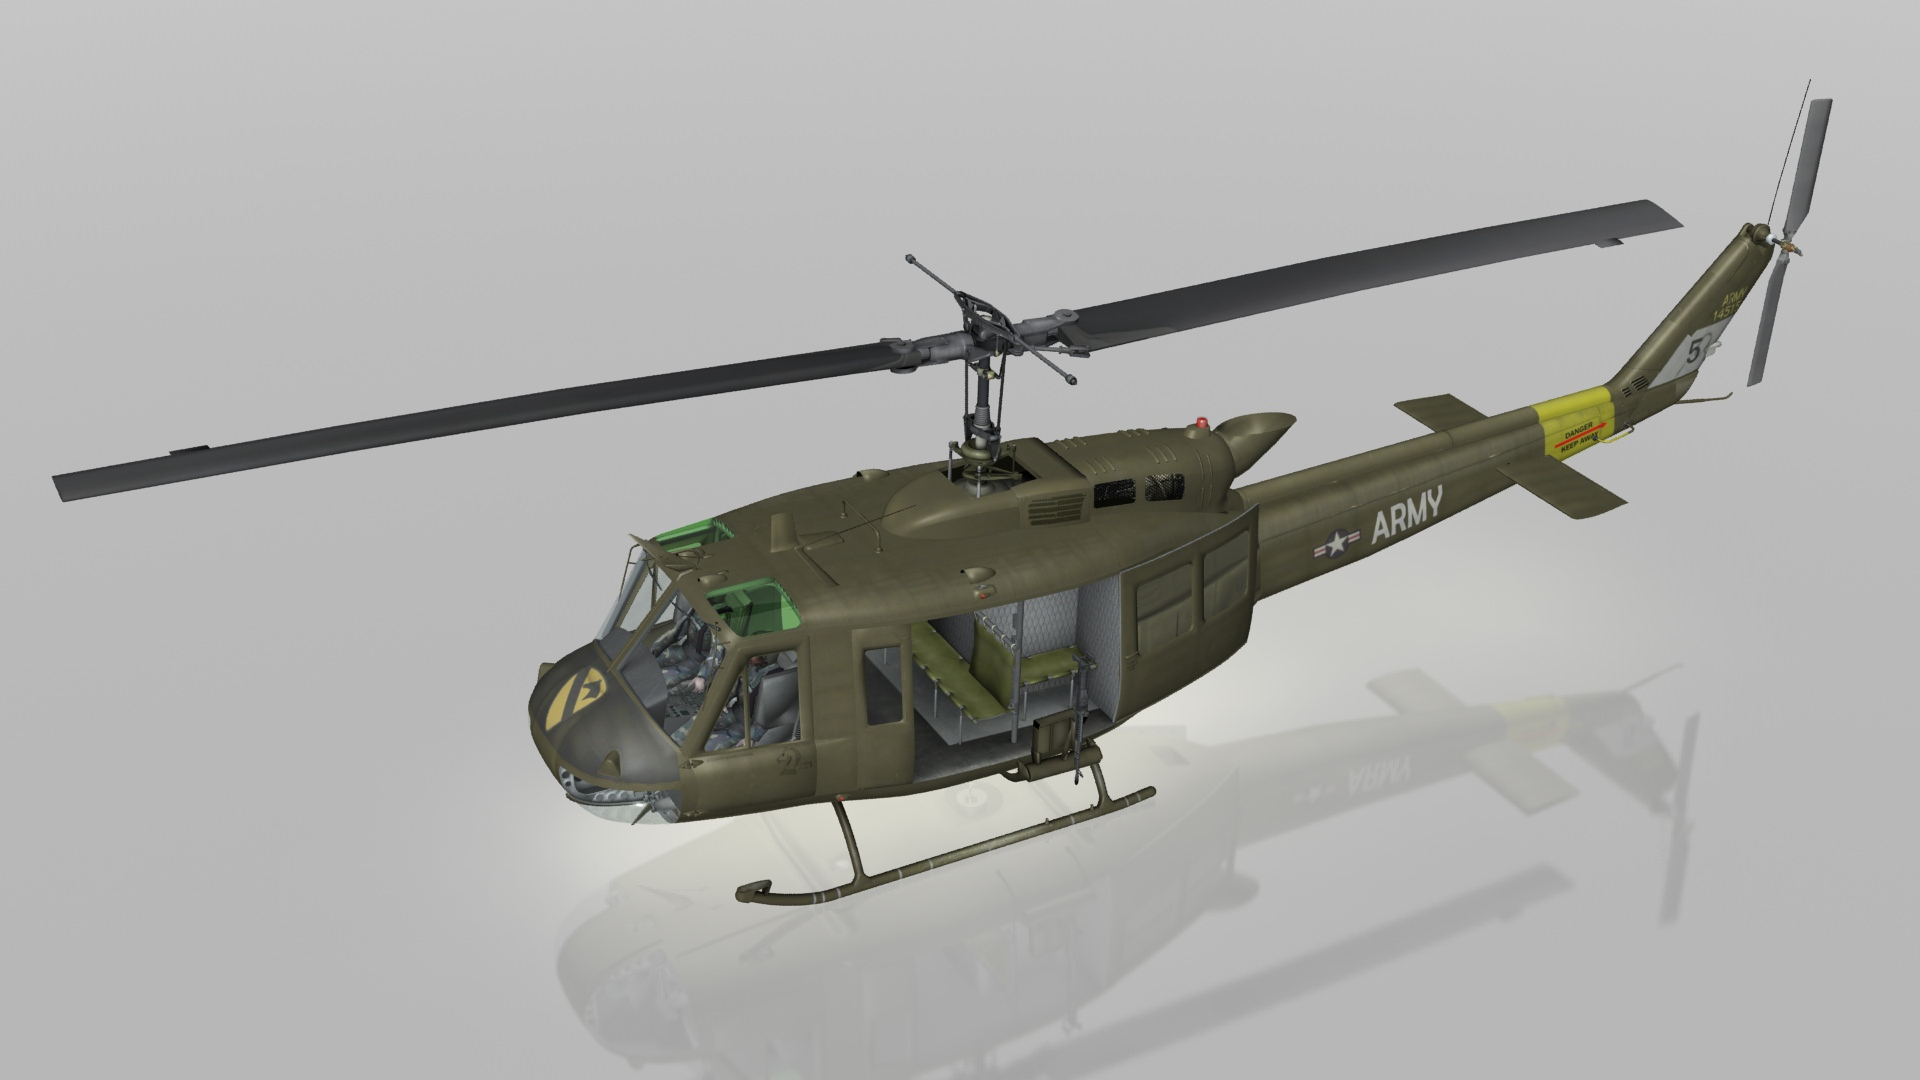 helicopter toys with Uh1 Huey Us Army on Uh1 Huey Us Army furthermore Iotti Original Genuine Wifi818 2 4g Remote Real Time Transmission Of Remote Camera Module U818s as well Watch in addition Rc Boat Toys besides Playmobil Police Bike.